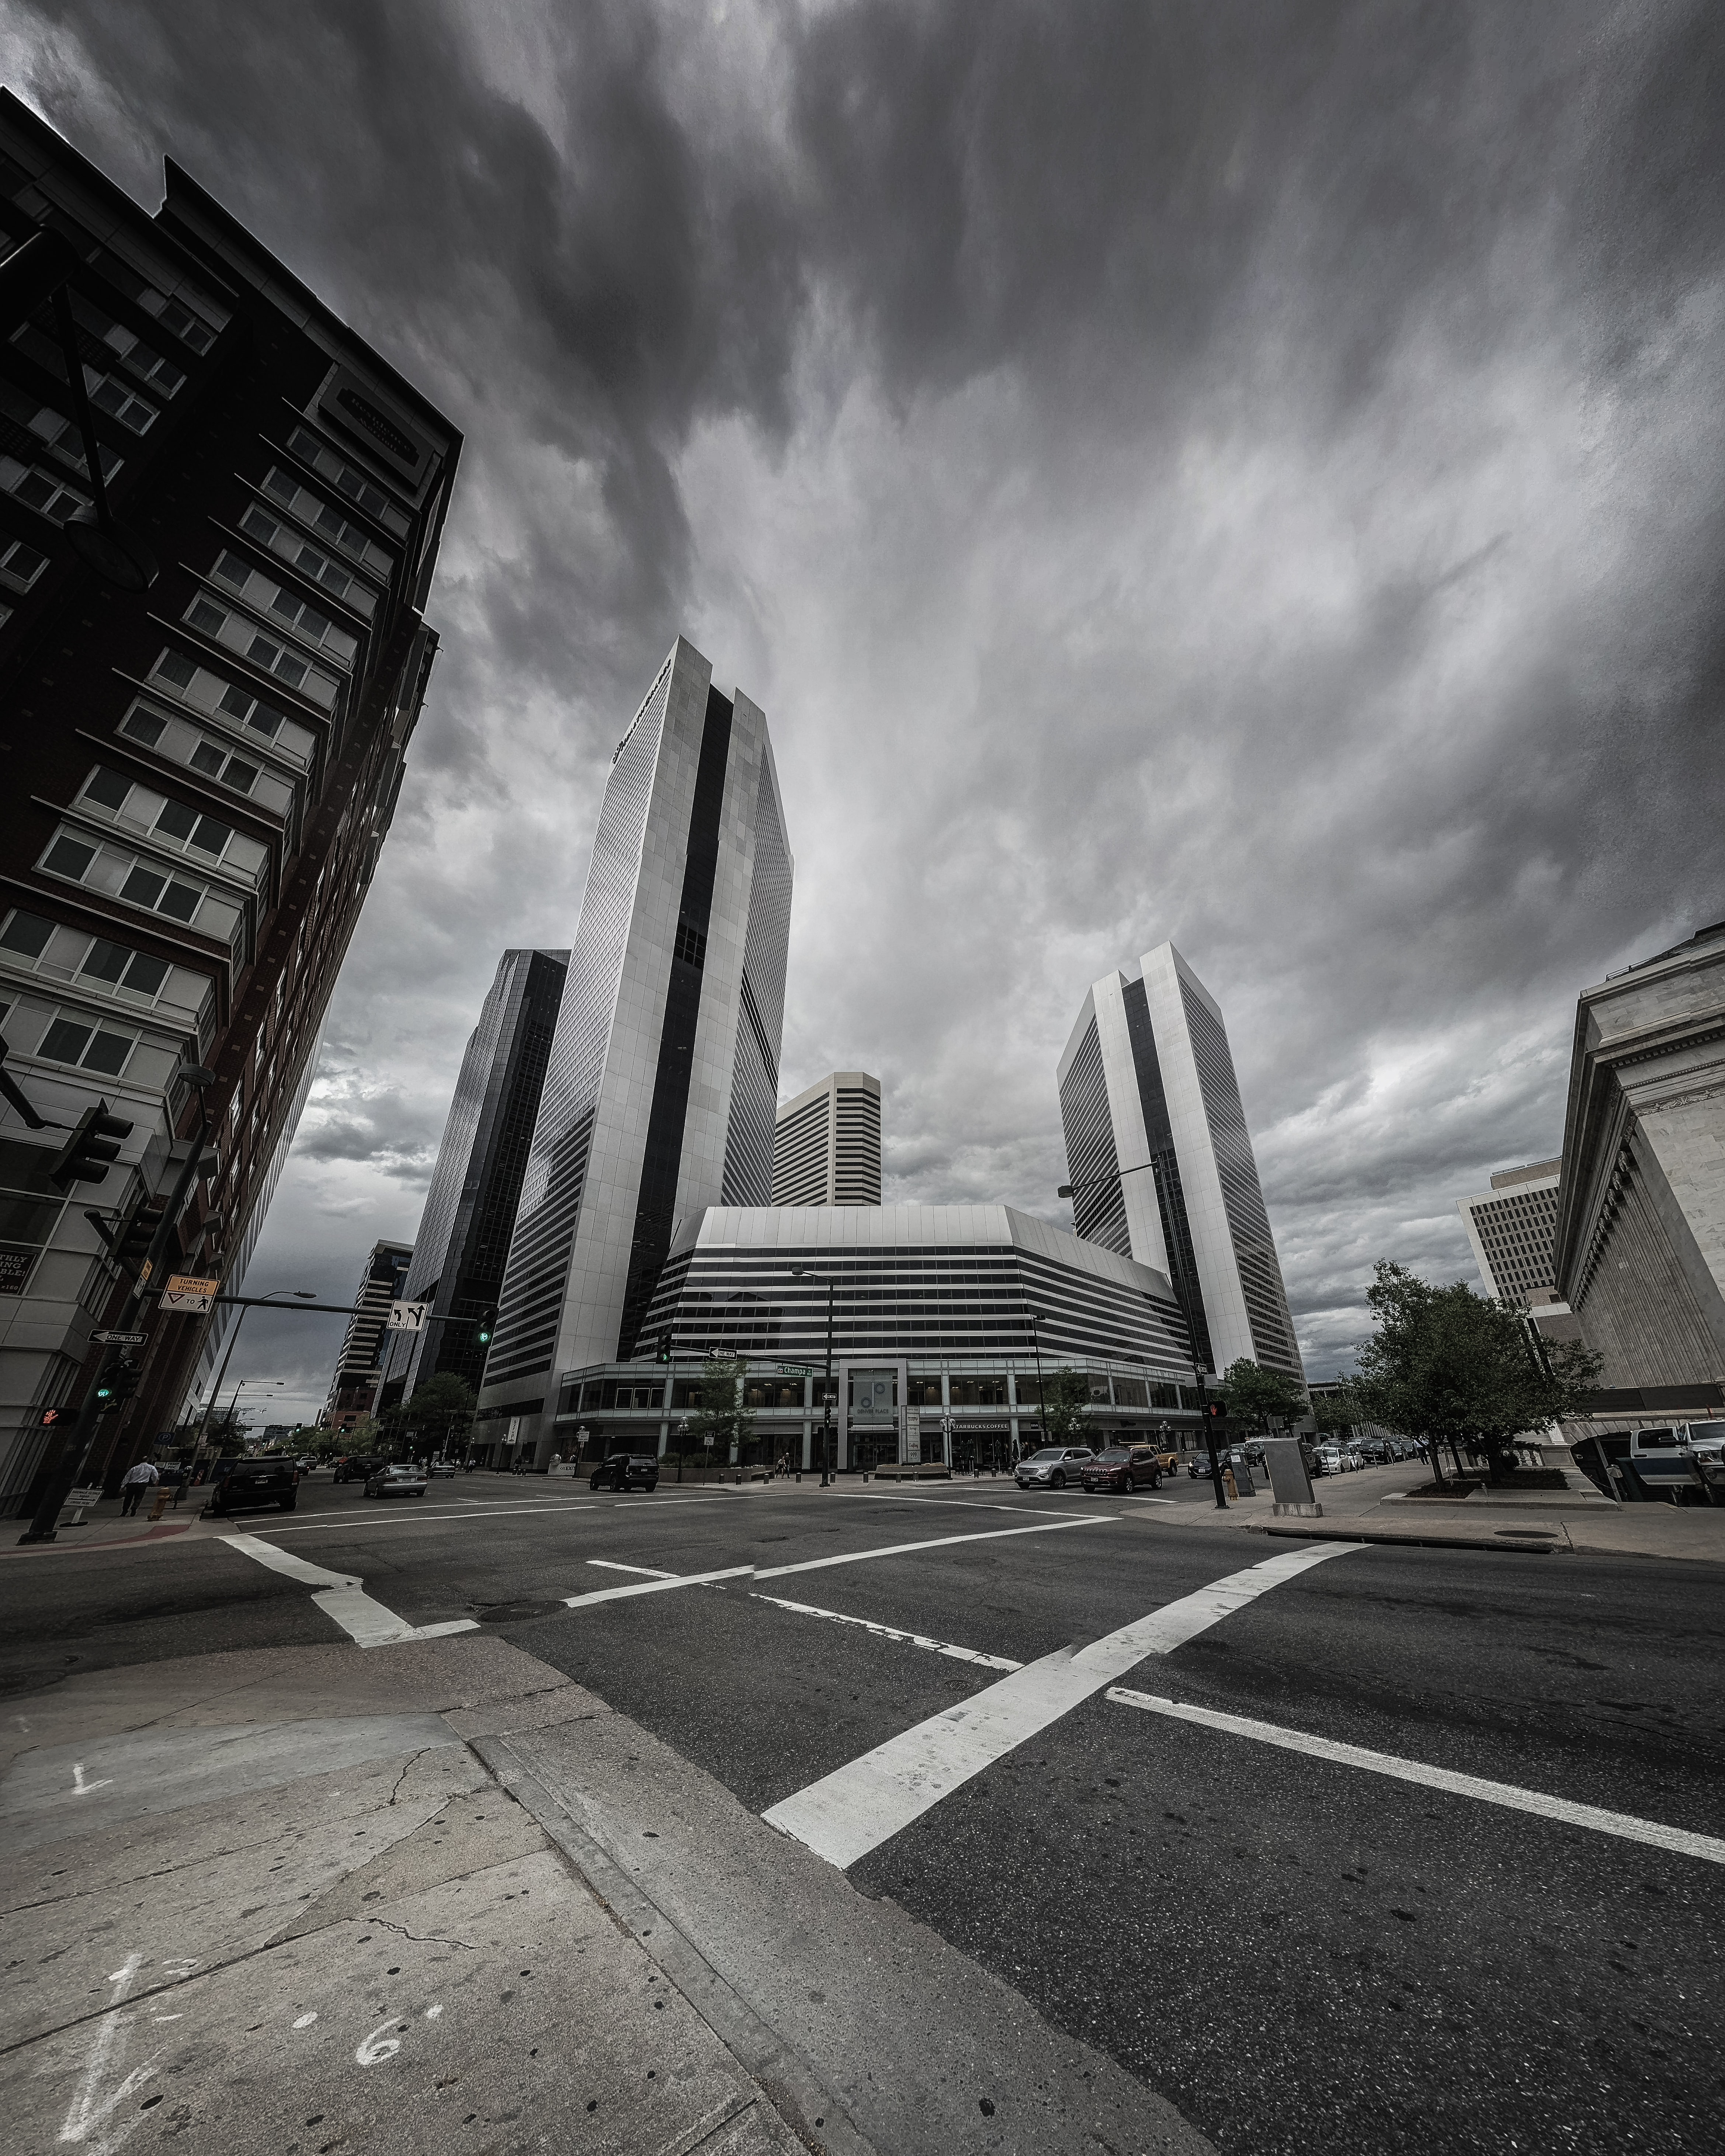 grayscale photo of buildings and rodas